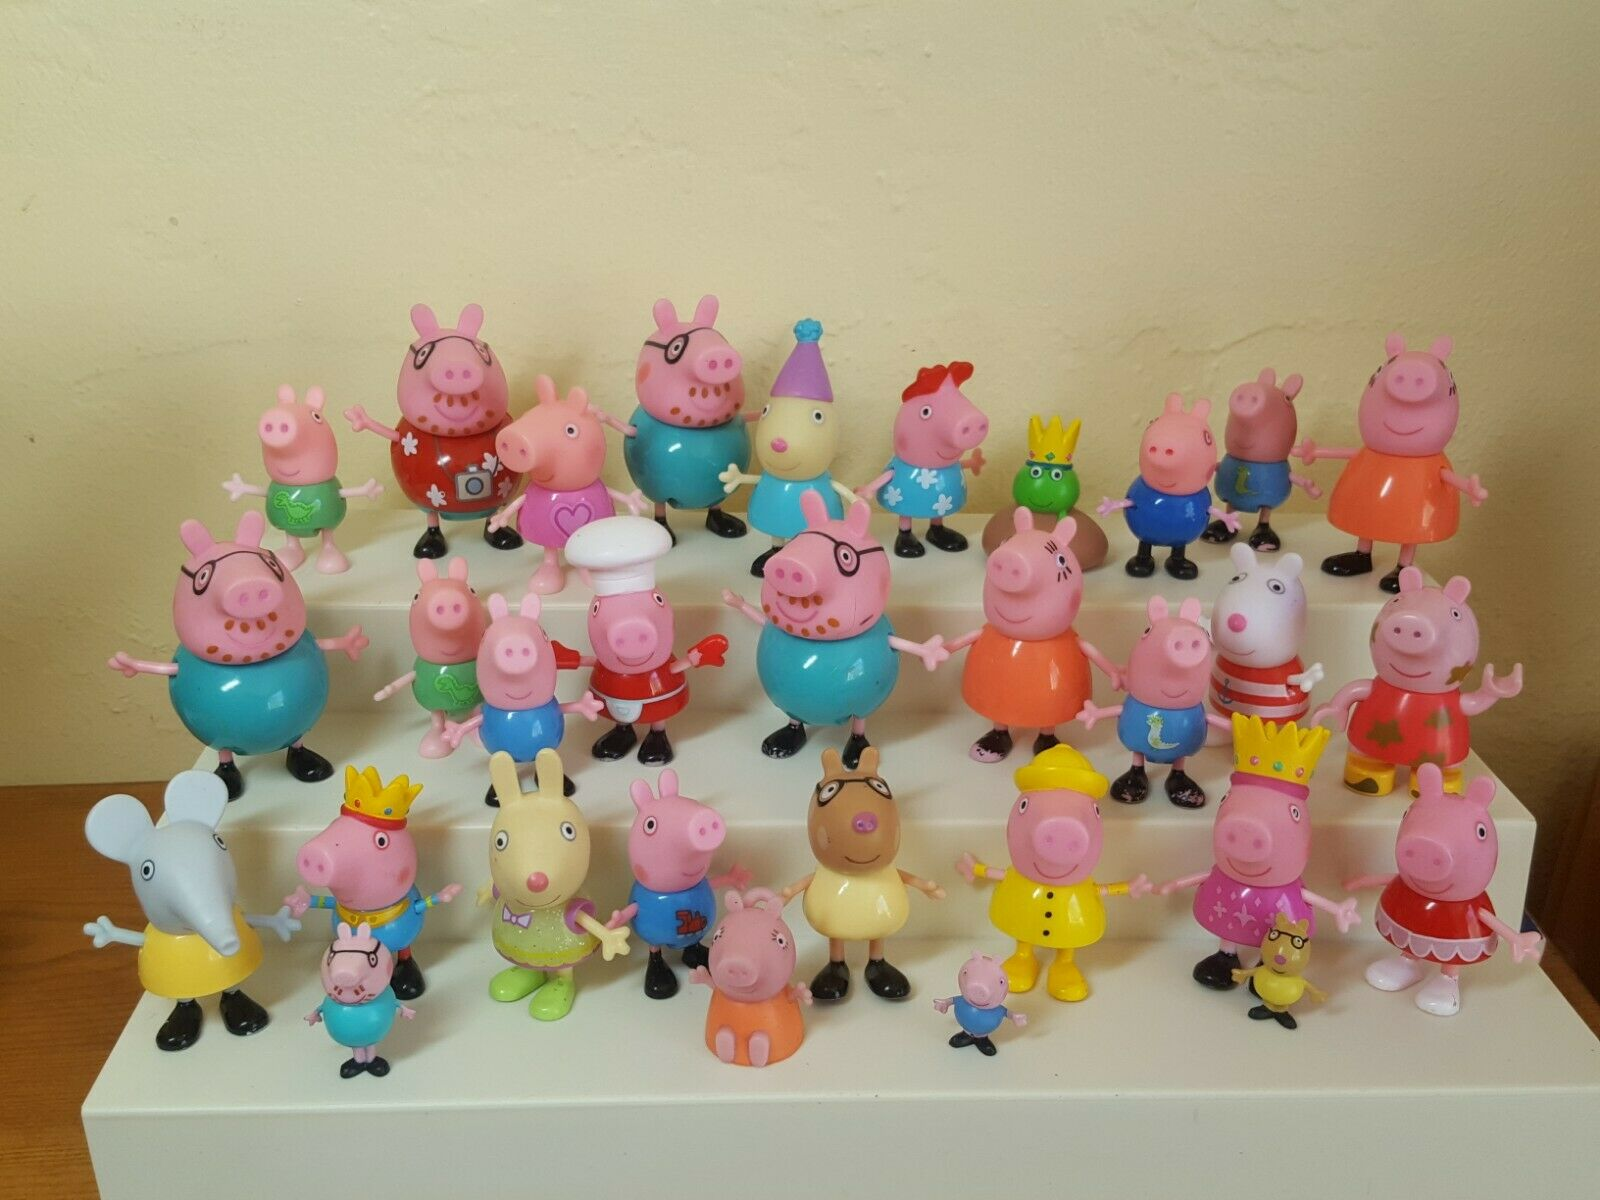 35 Peppa Pig cartoon figures and friends birthday cake topper different sizes